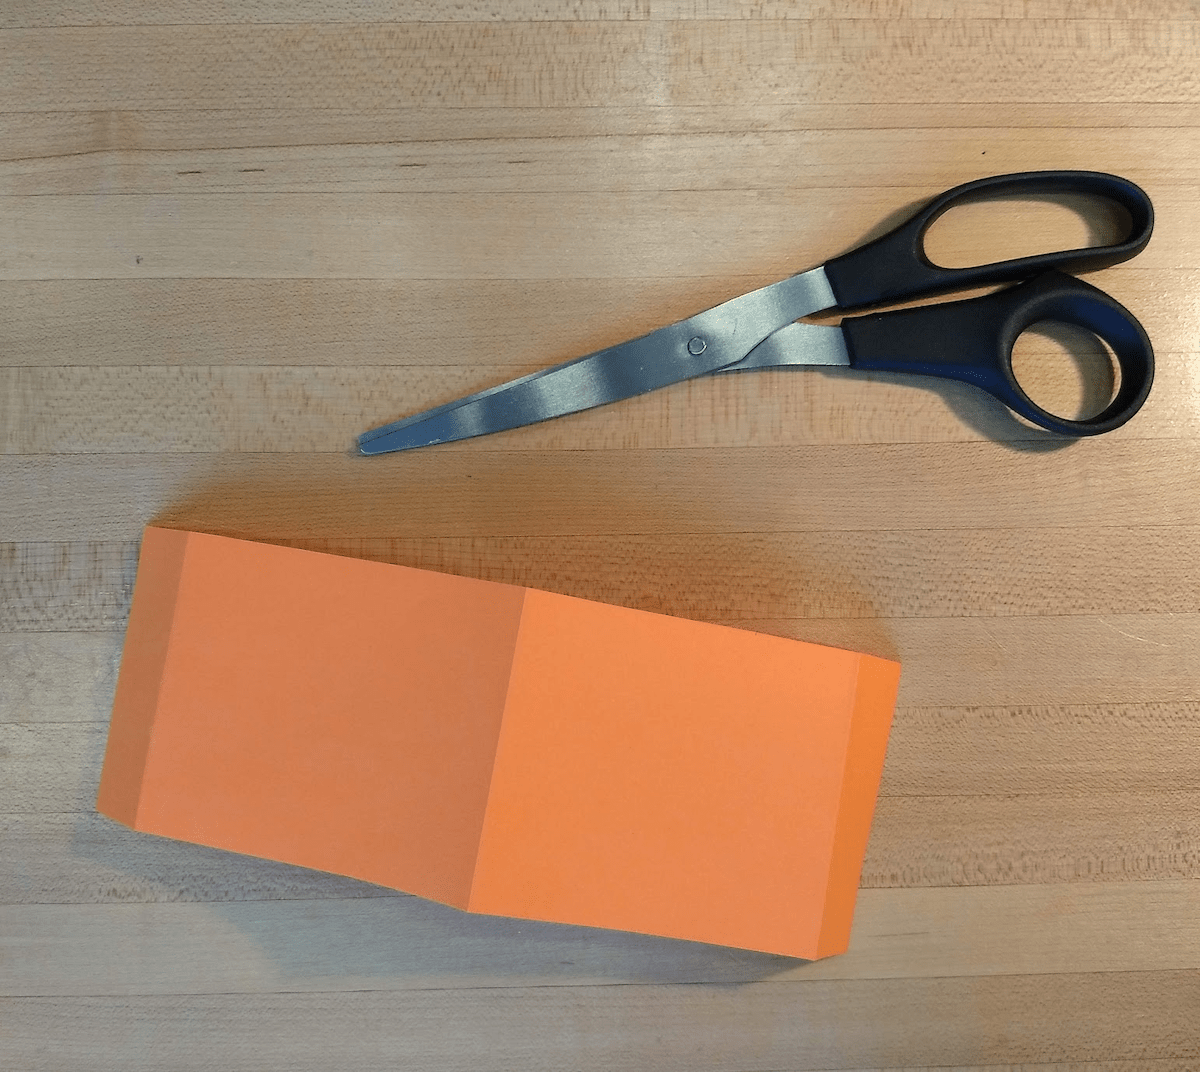 Cut out a long slip of paper and fold it as shown above.